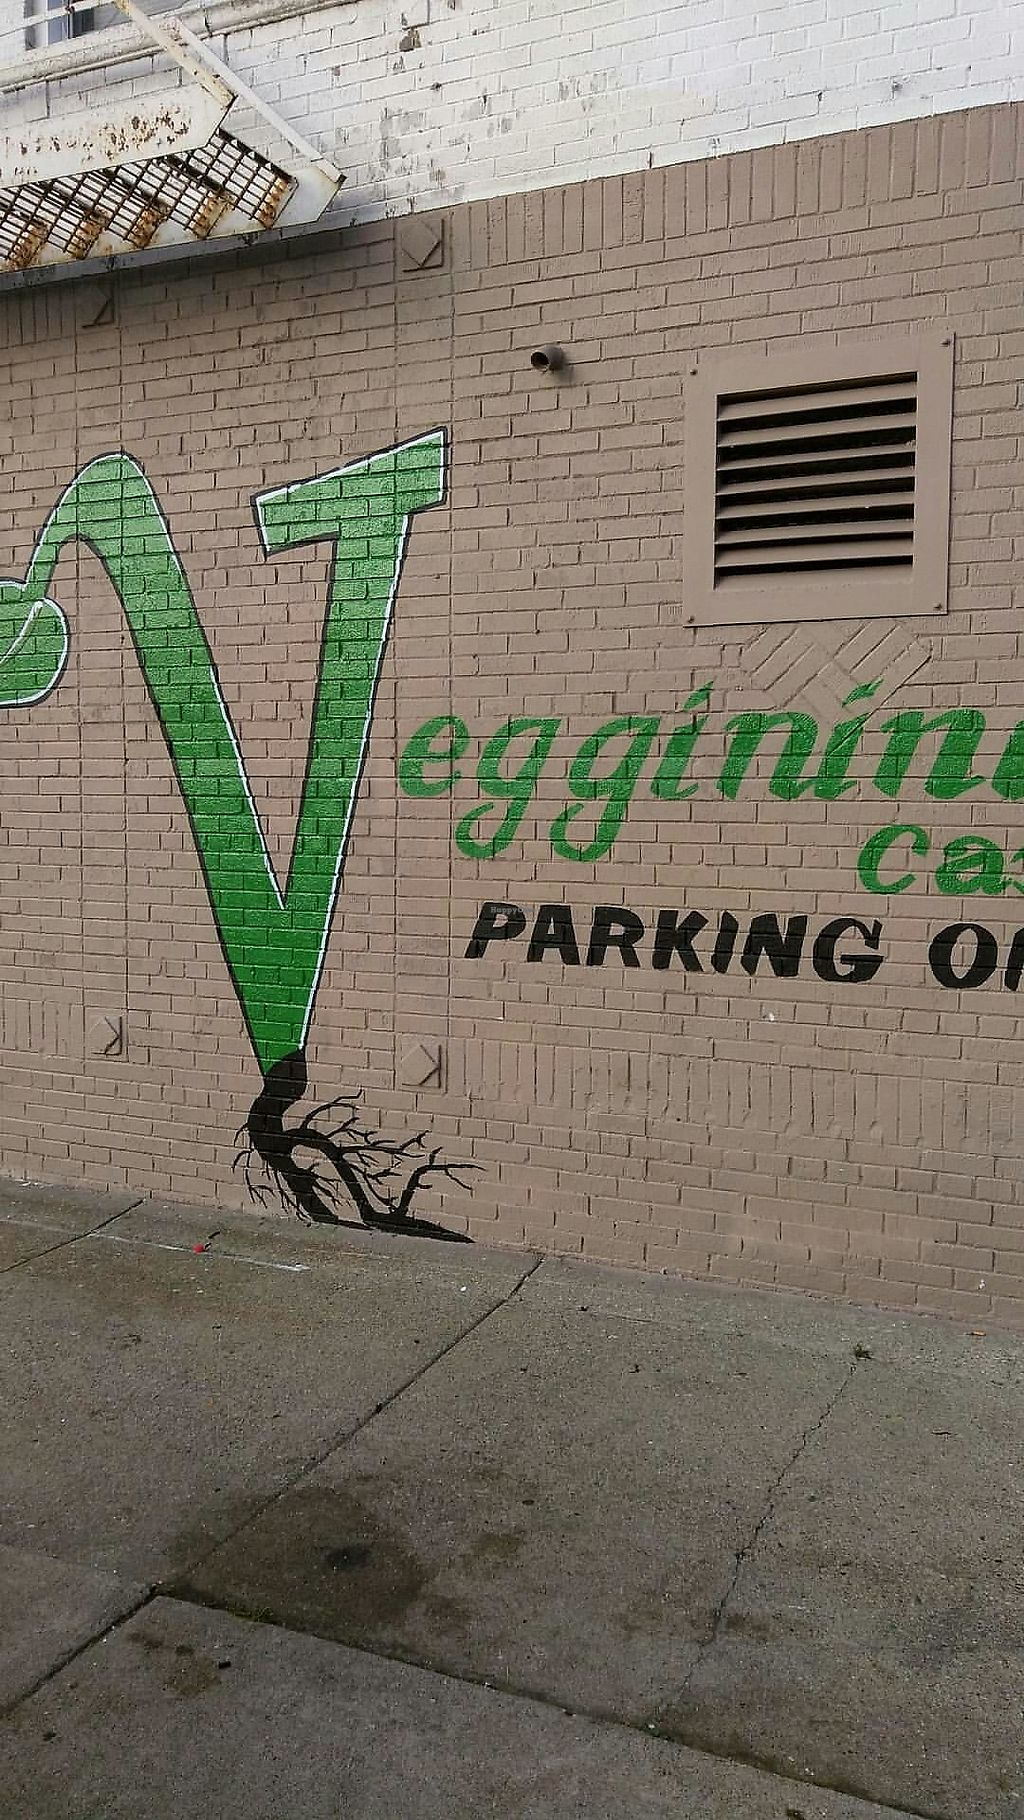 """Photo of Veggininis Paradise Cafe  by <a href=""""/members/profile/VeggininisCafe"""">VeggininisCafe</a> <br/>Side parking on Nottingham <br/> November 5, 2017  - <a href='/contact/abuse/image/104320/322281'>Report</a>"""